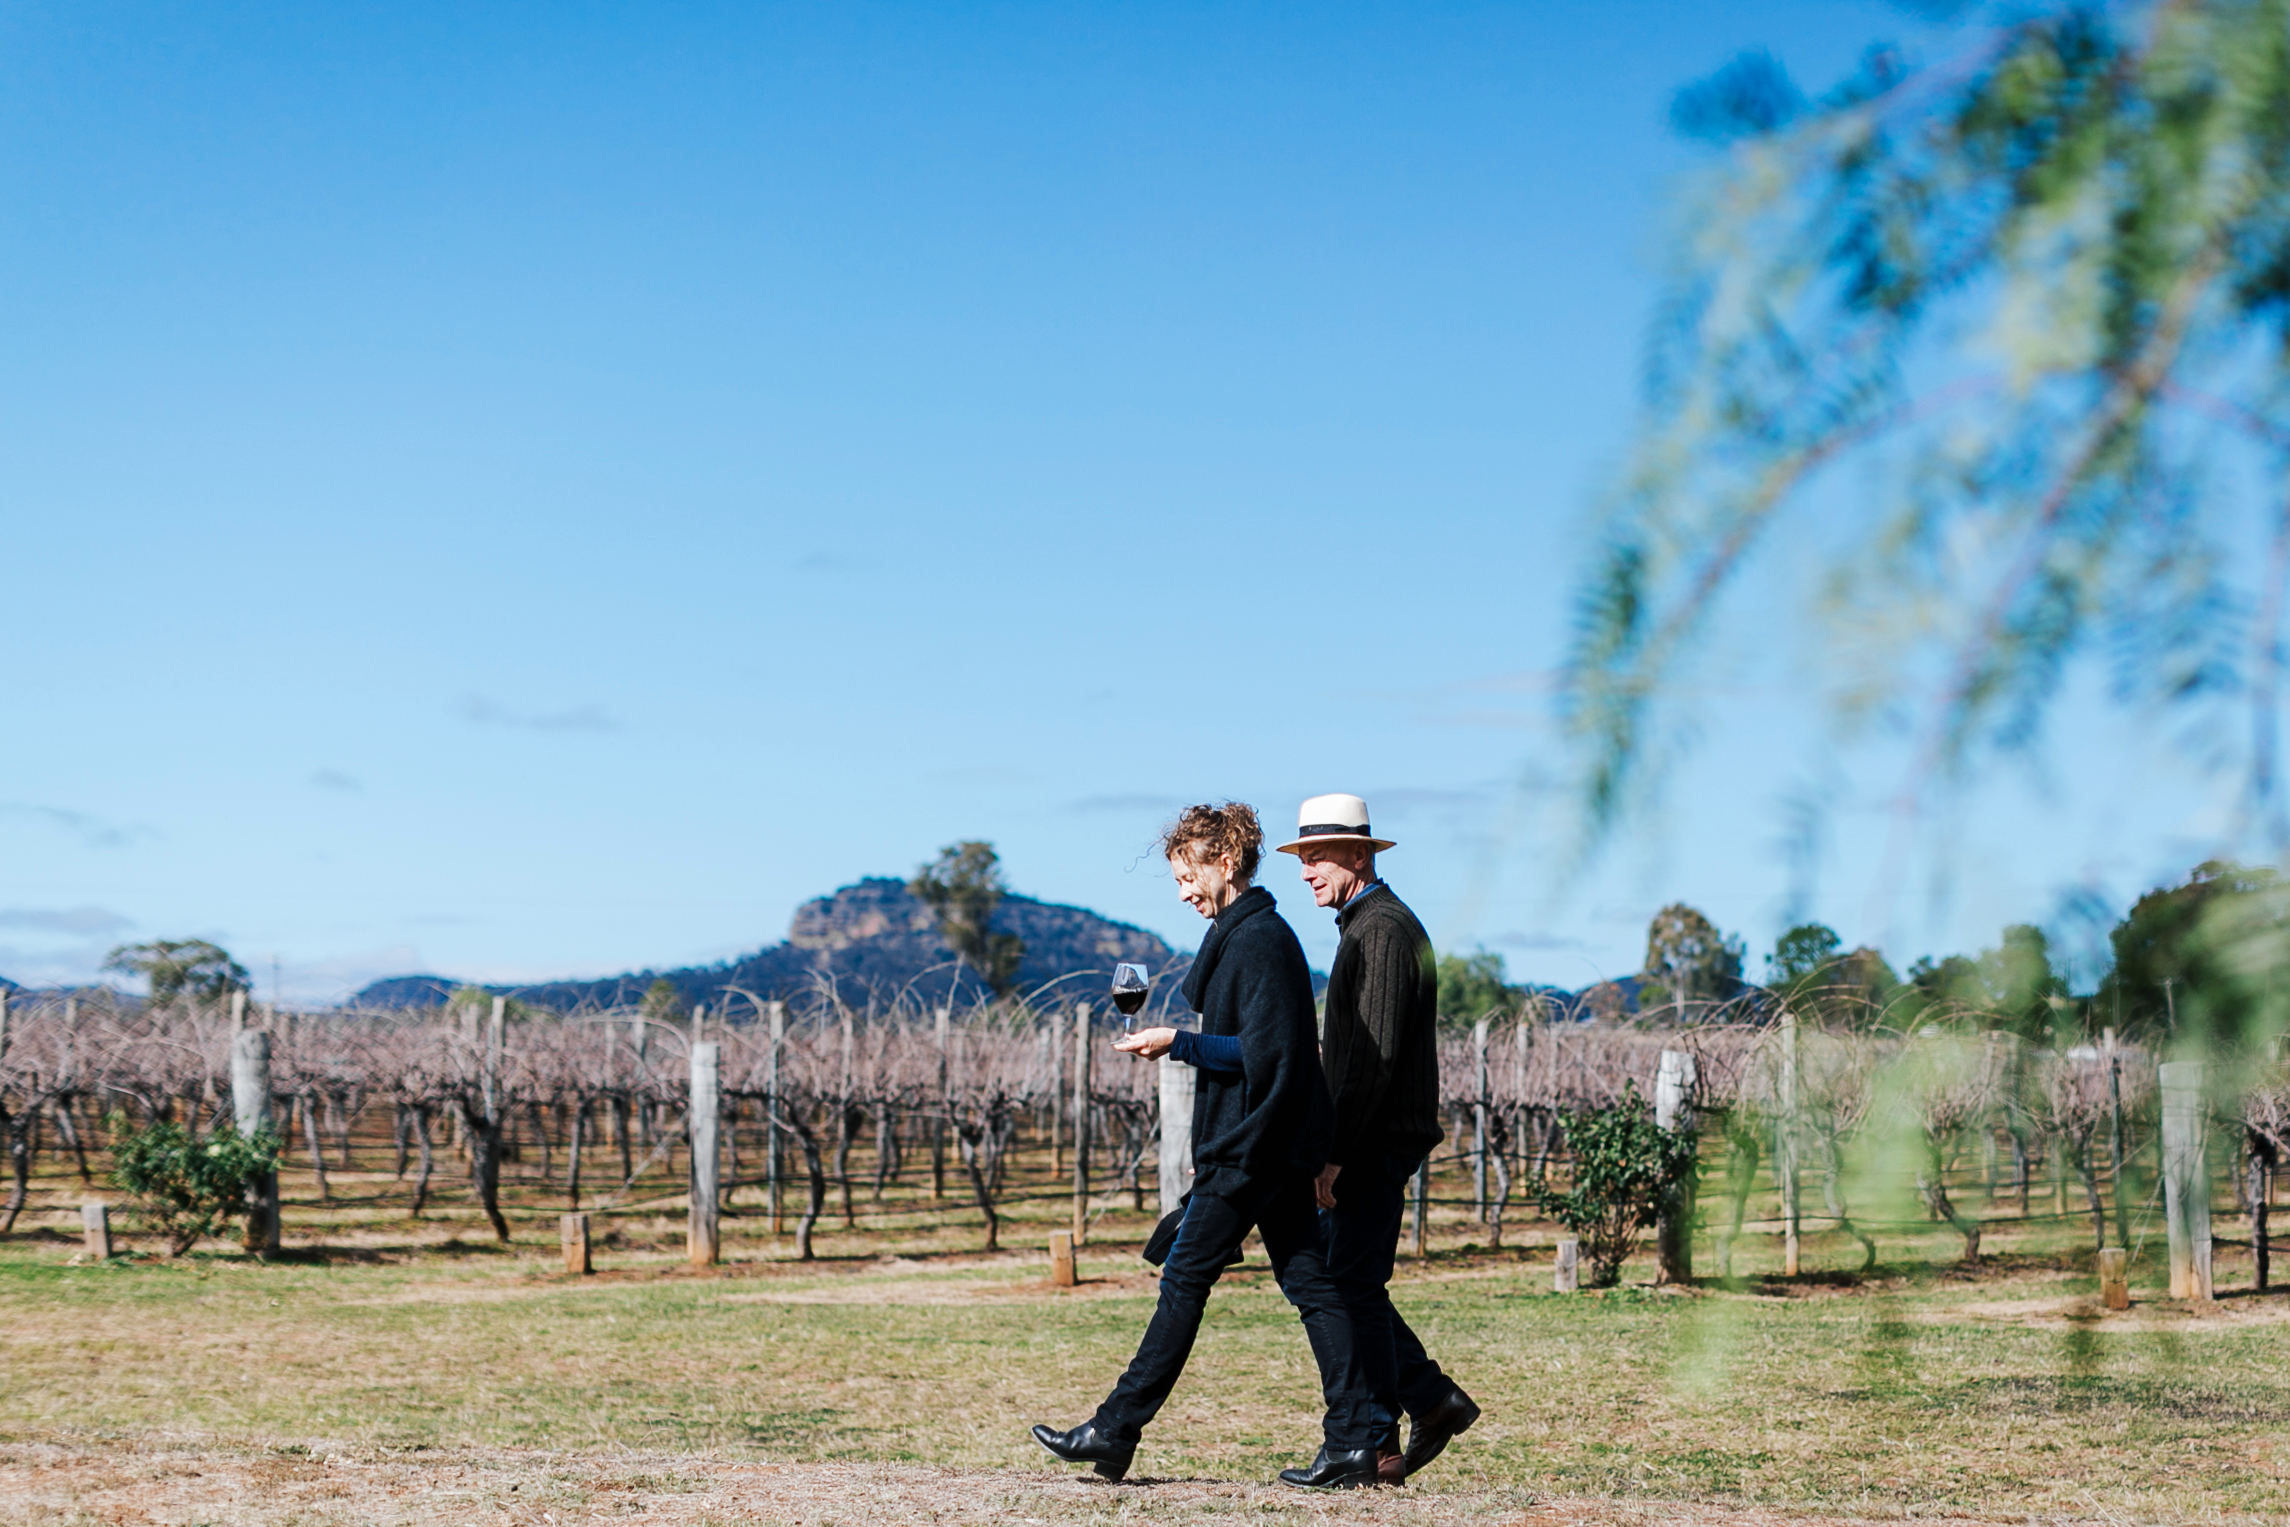 A day in the life of a winemaker